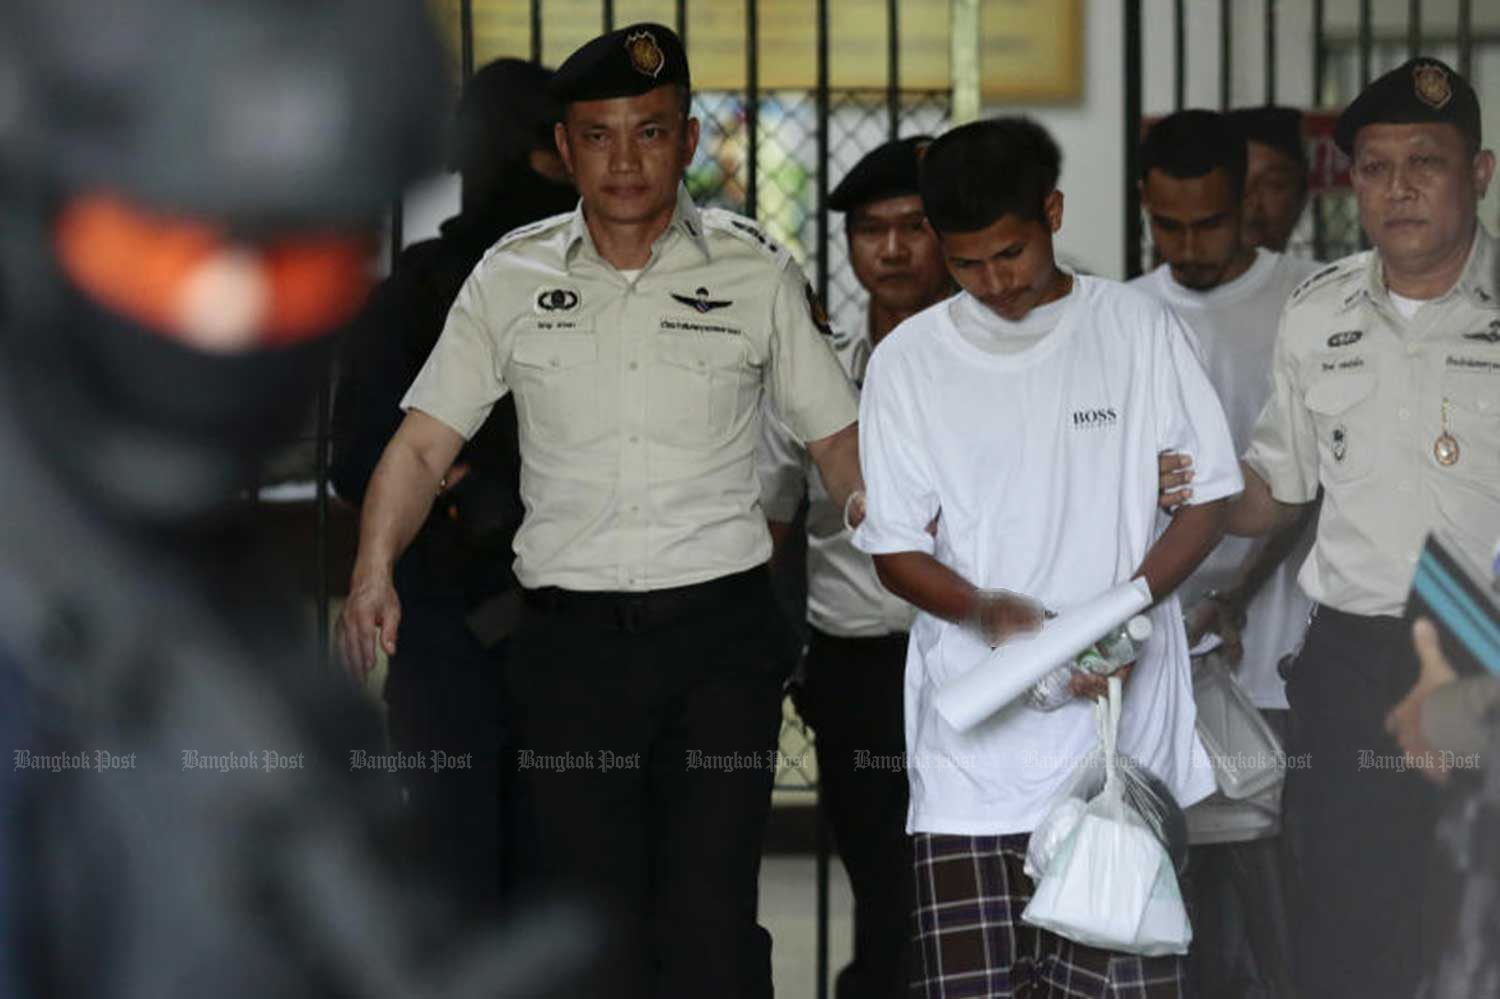 Two suspects - Lu-ai Sae-ngae, 22, and Widan Maha, 27 - are taken from the Criminal Court to a temporary prison at the 11th Military Circle on Aug 15 after police obtained court approval to detain them for a further 12 days. (File photo by Patipat Janthong)